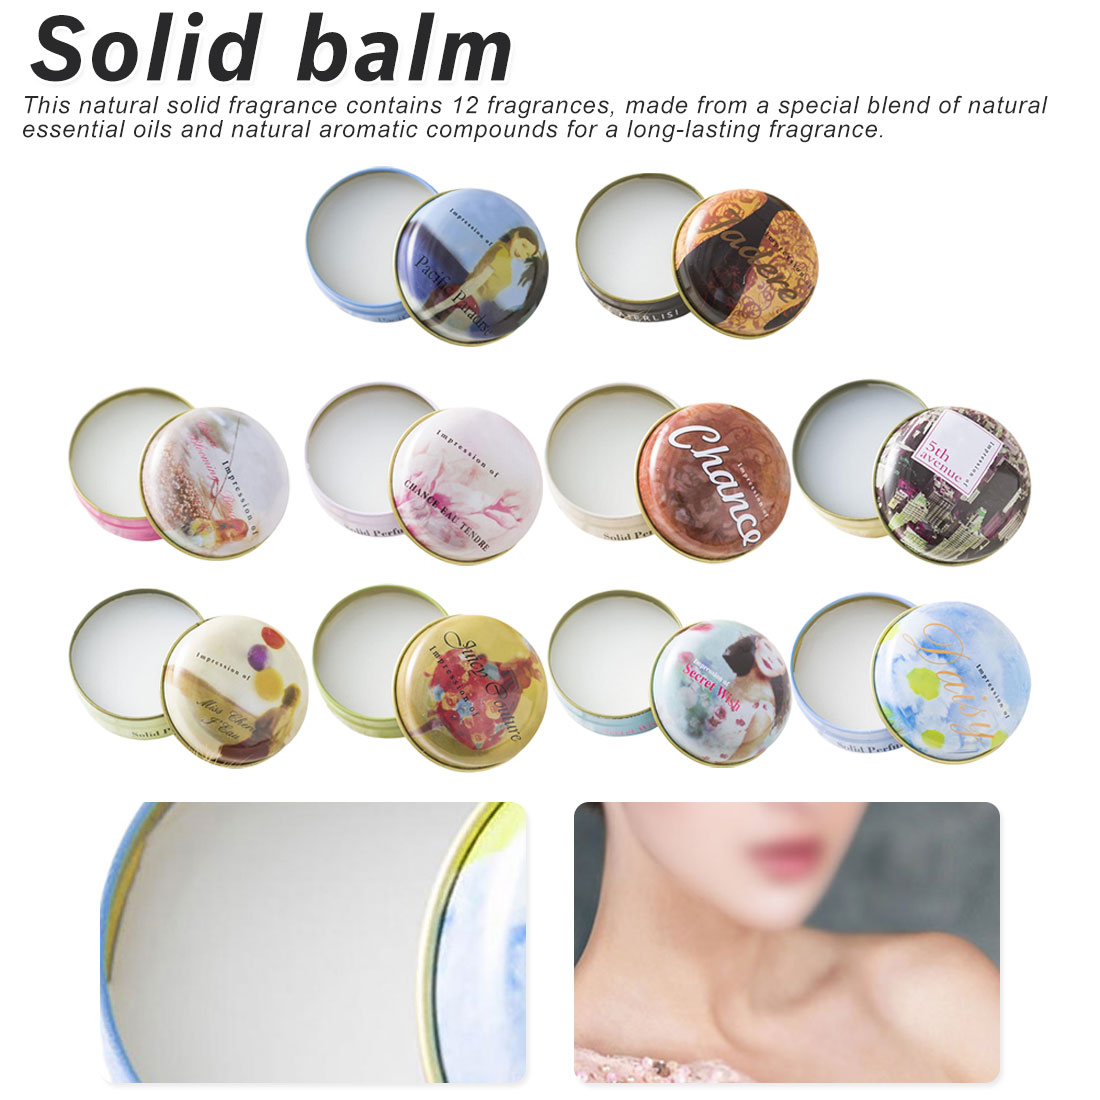 1PCS 15g Solid Perfume For Men Women Floral Portable Round Box Solid Perfume Body Fragrance Skin Care Essential Oil